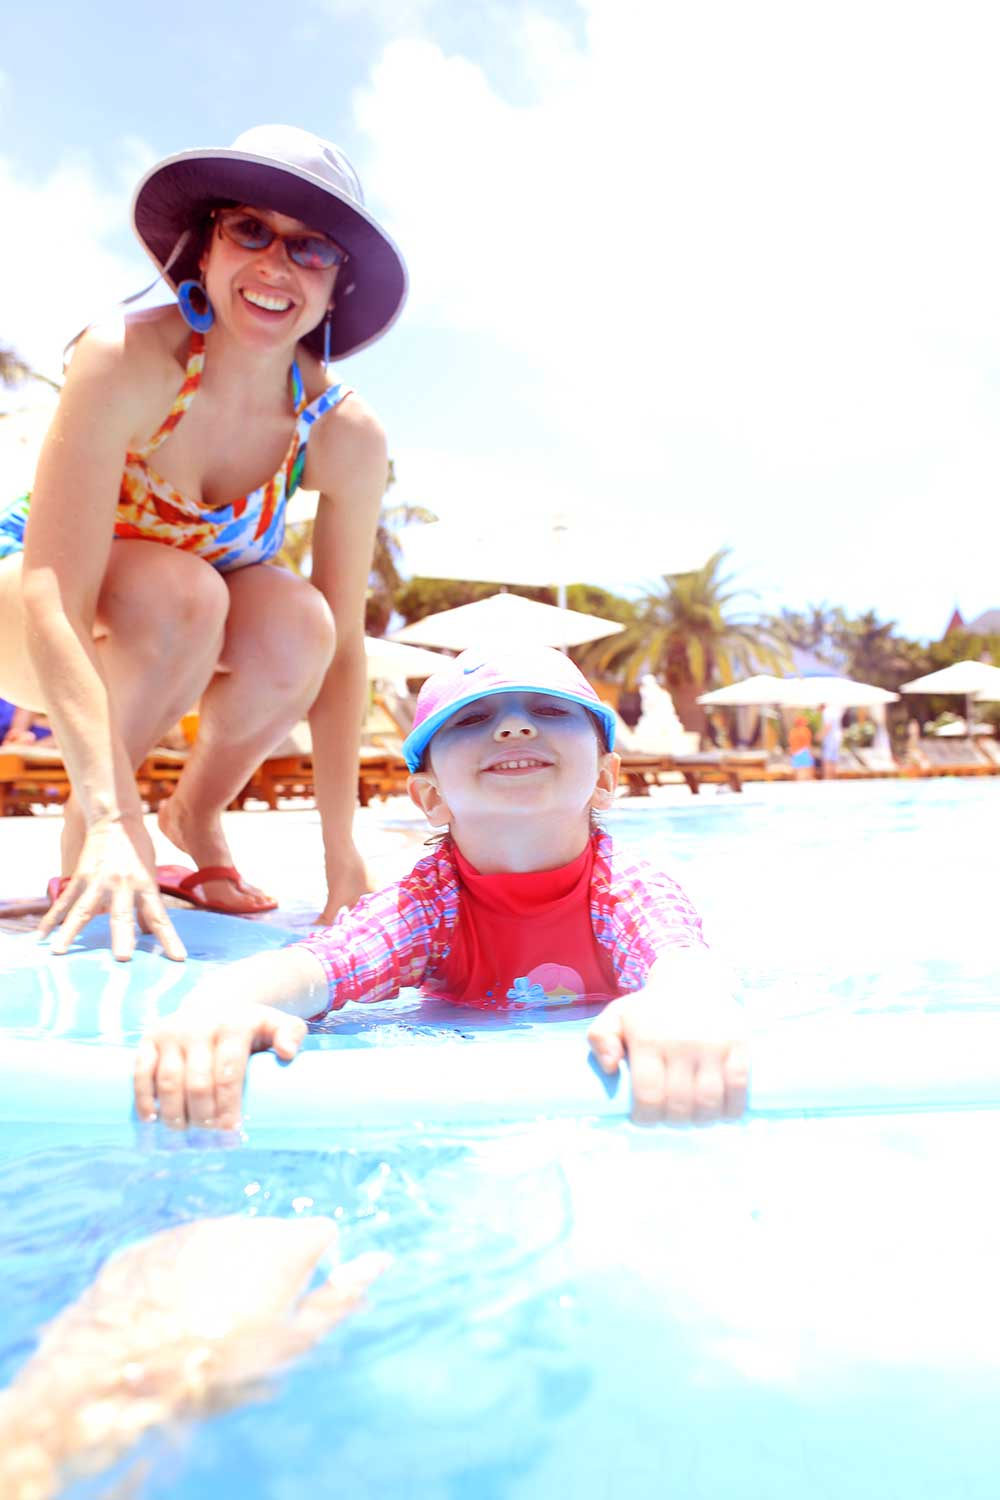 Our daughter learned how to swim in the French Village Pool of Beaches Turks & Caicos resort. We've returned every year since then.